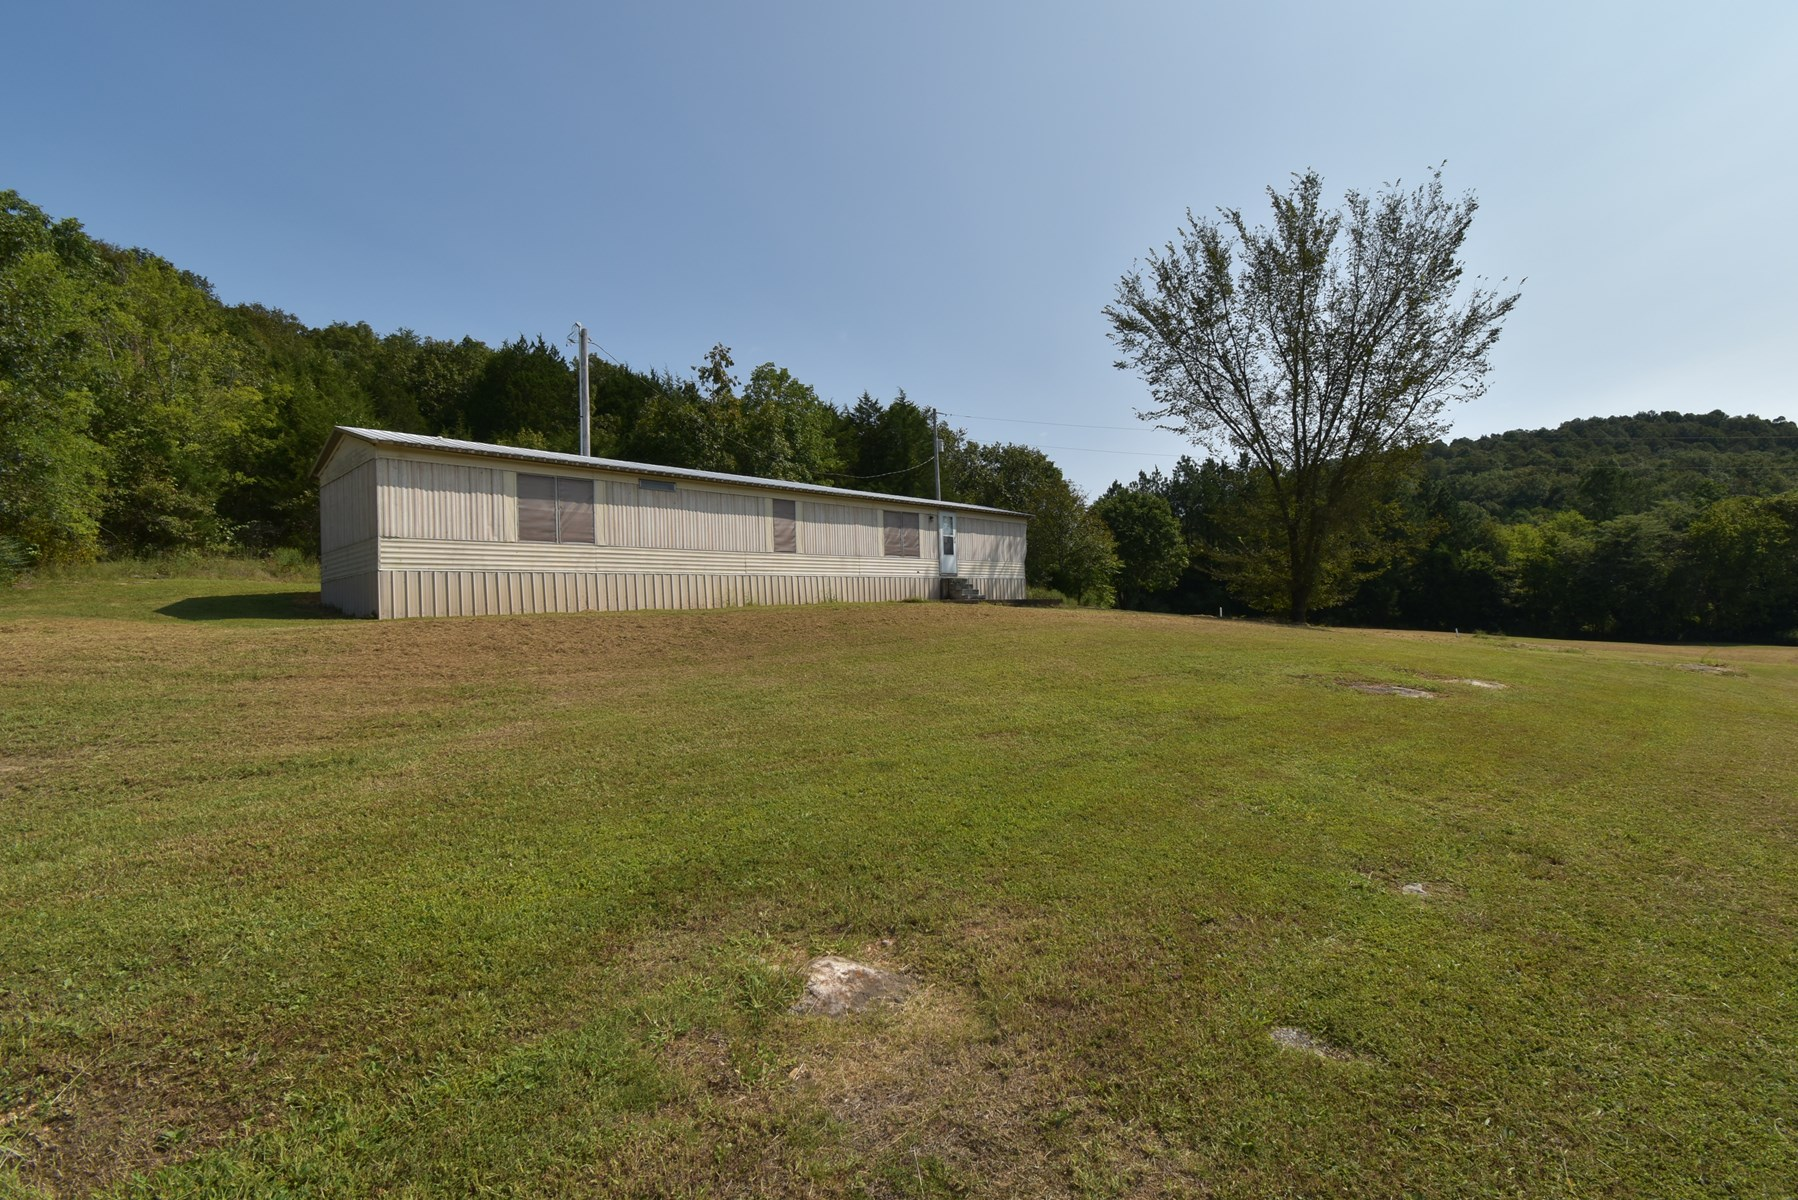 22 acres and a manufactured home for sale!